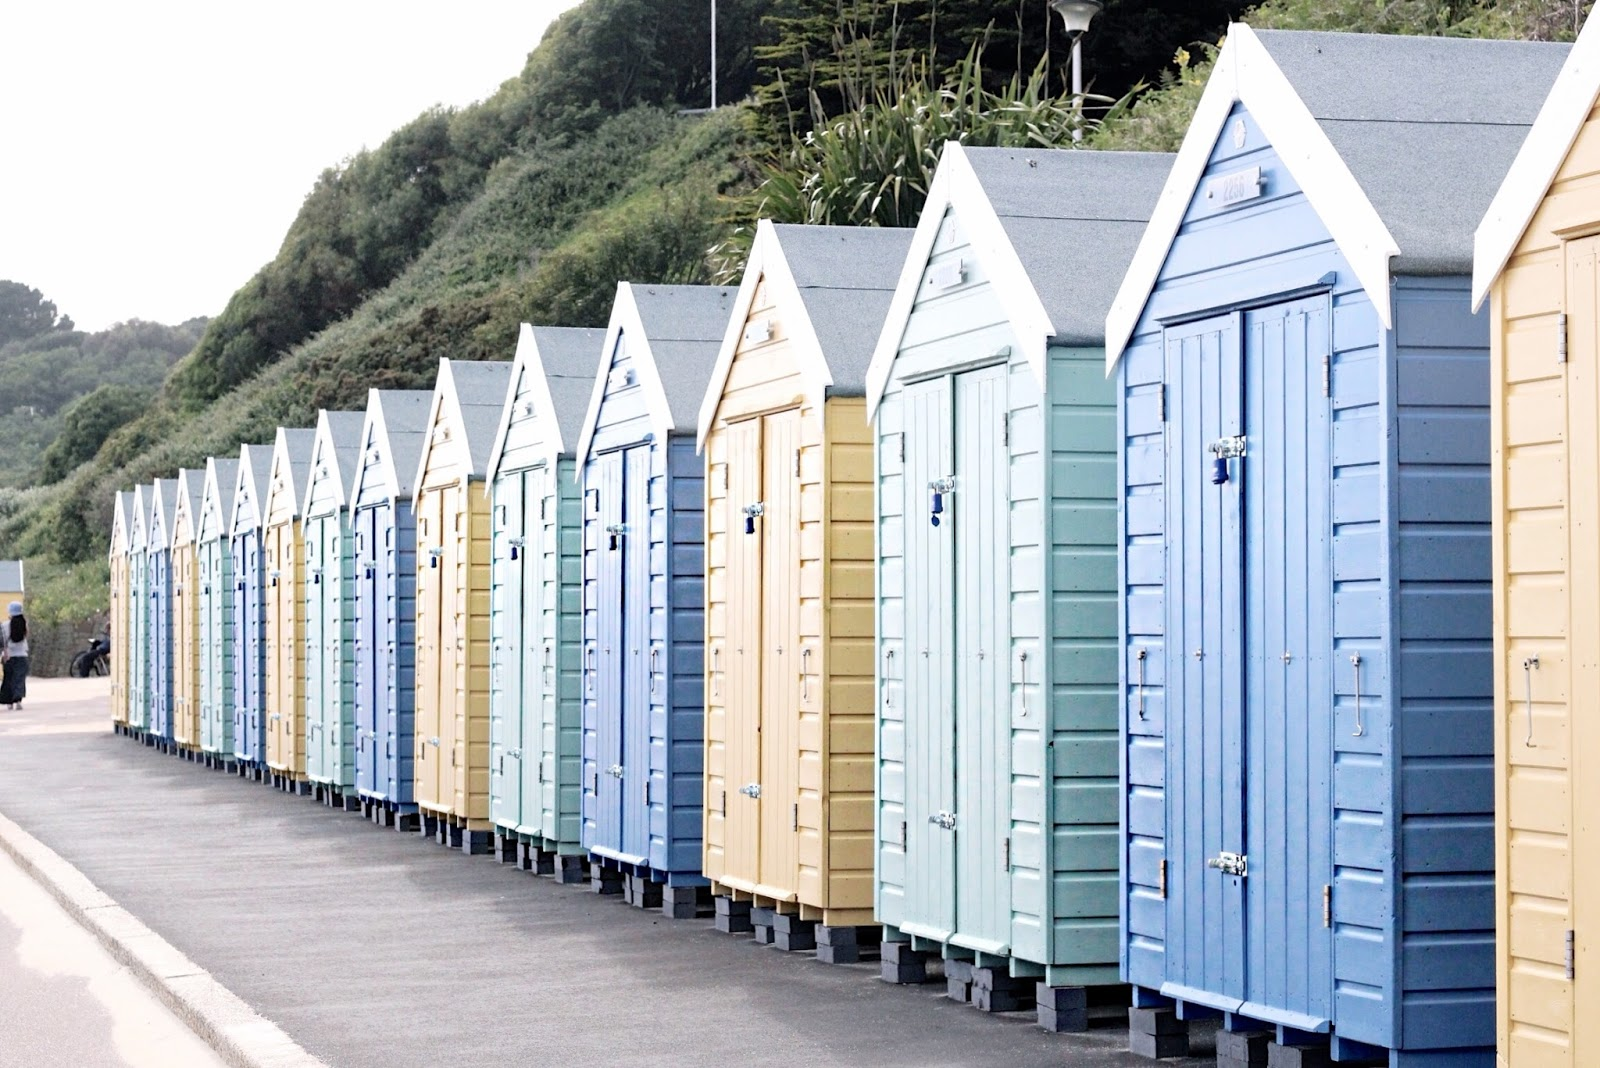 Colourful beach huts in Bournemouth